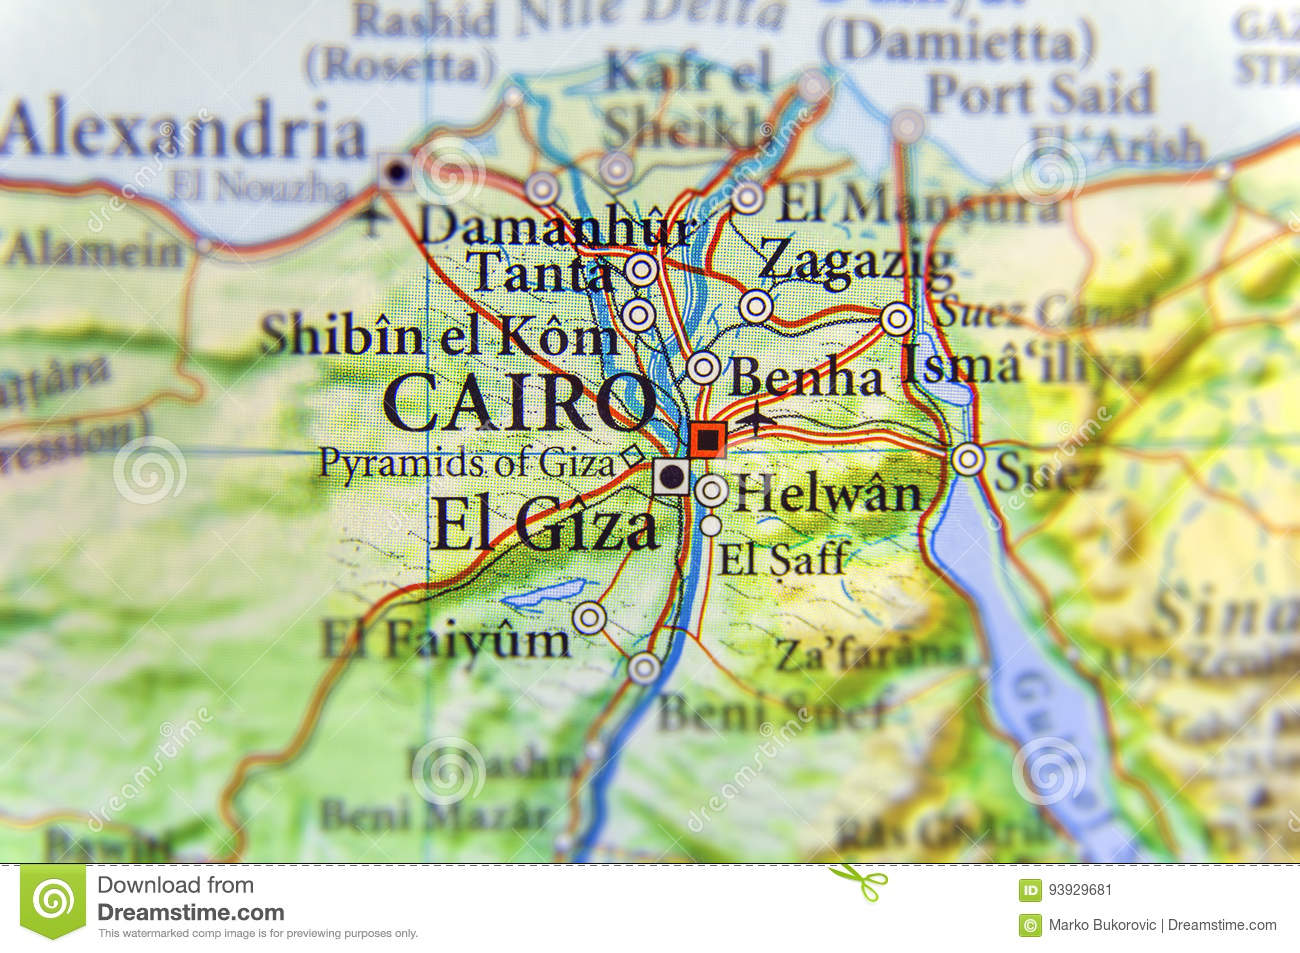 Geographic Map Of Egypt With Capital City Cairo Stock Image ... on pyramid mexico city map, pyramid egypt map, pyramid giza map,